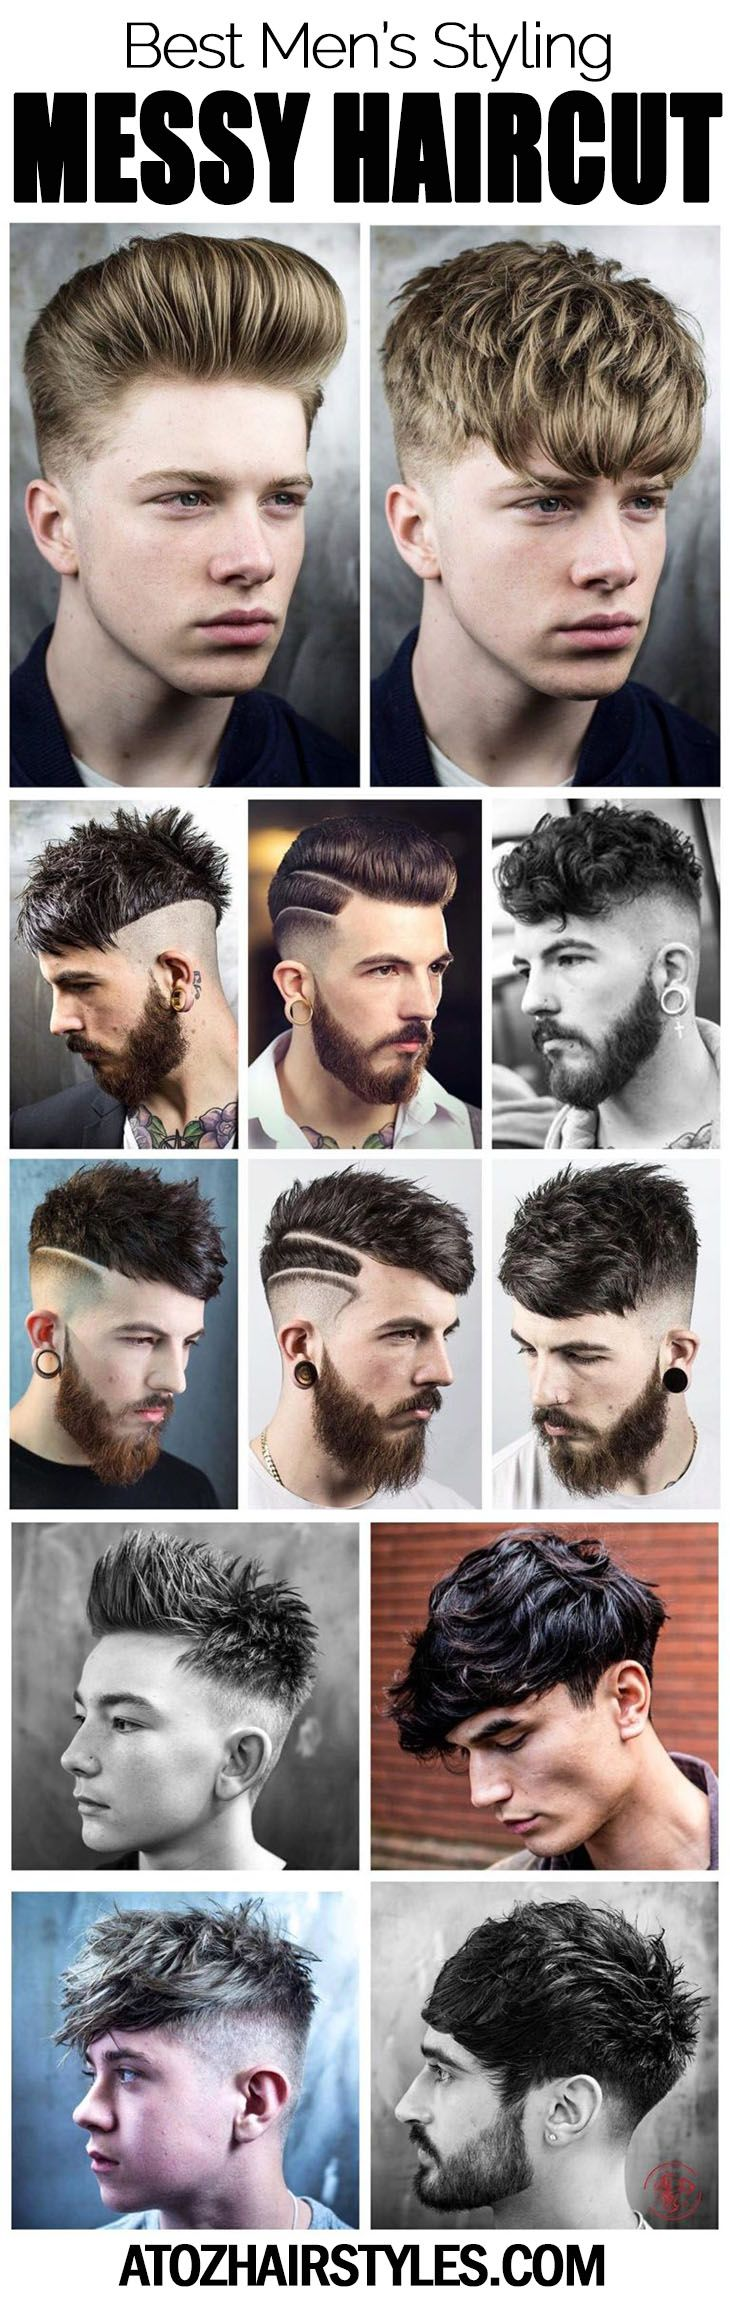 Men's messed up haircuts not the slightest bit at all suggest a look that is not administered to. Rather, men's messy hair does allude to a trim that is deliberately relaxed and hip with controlled uncertainty.